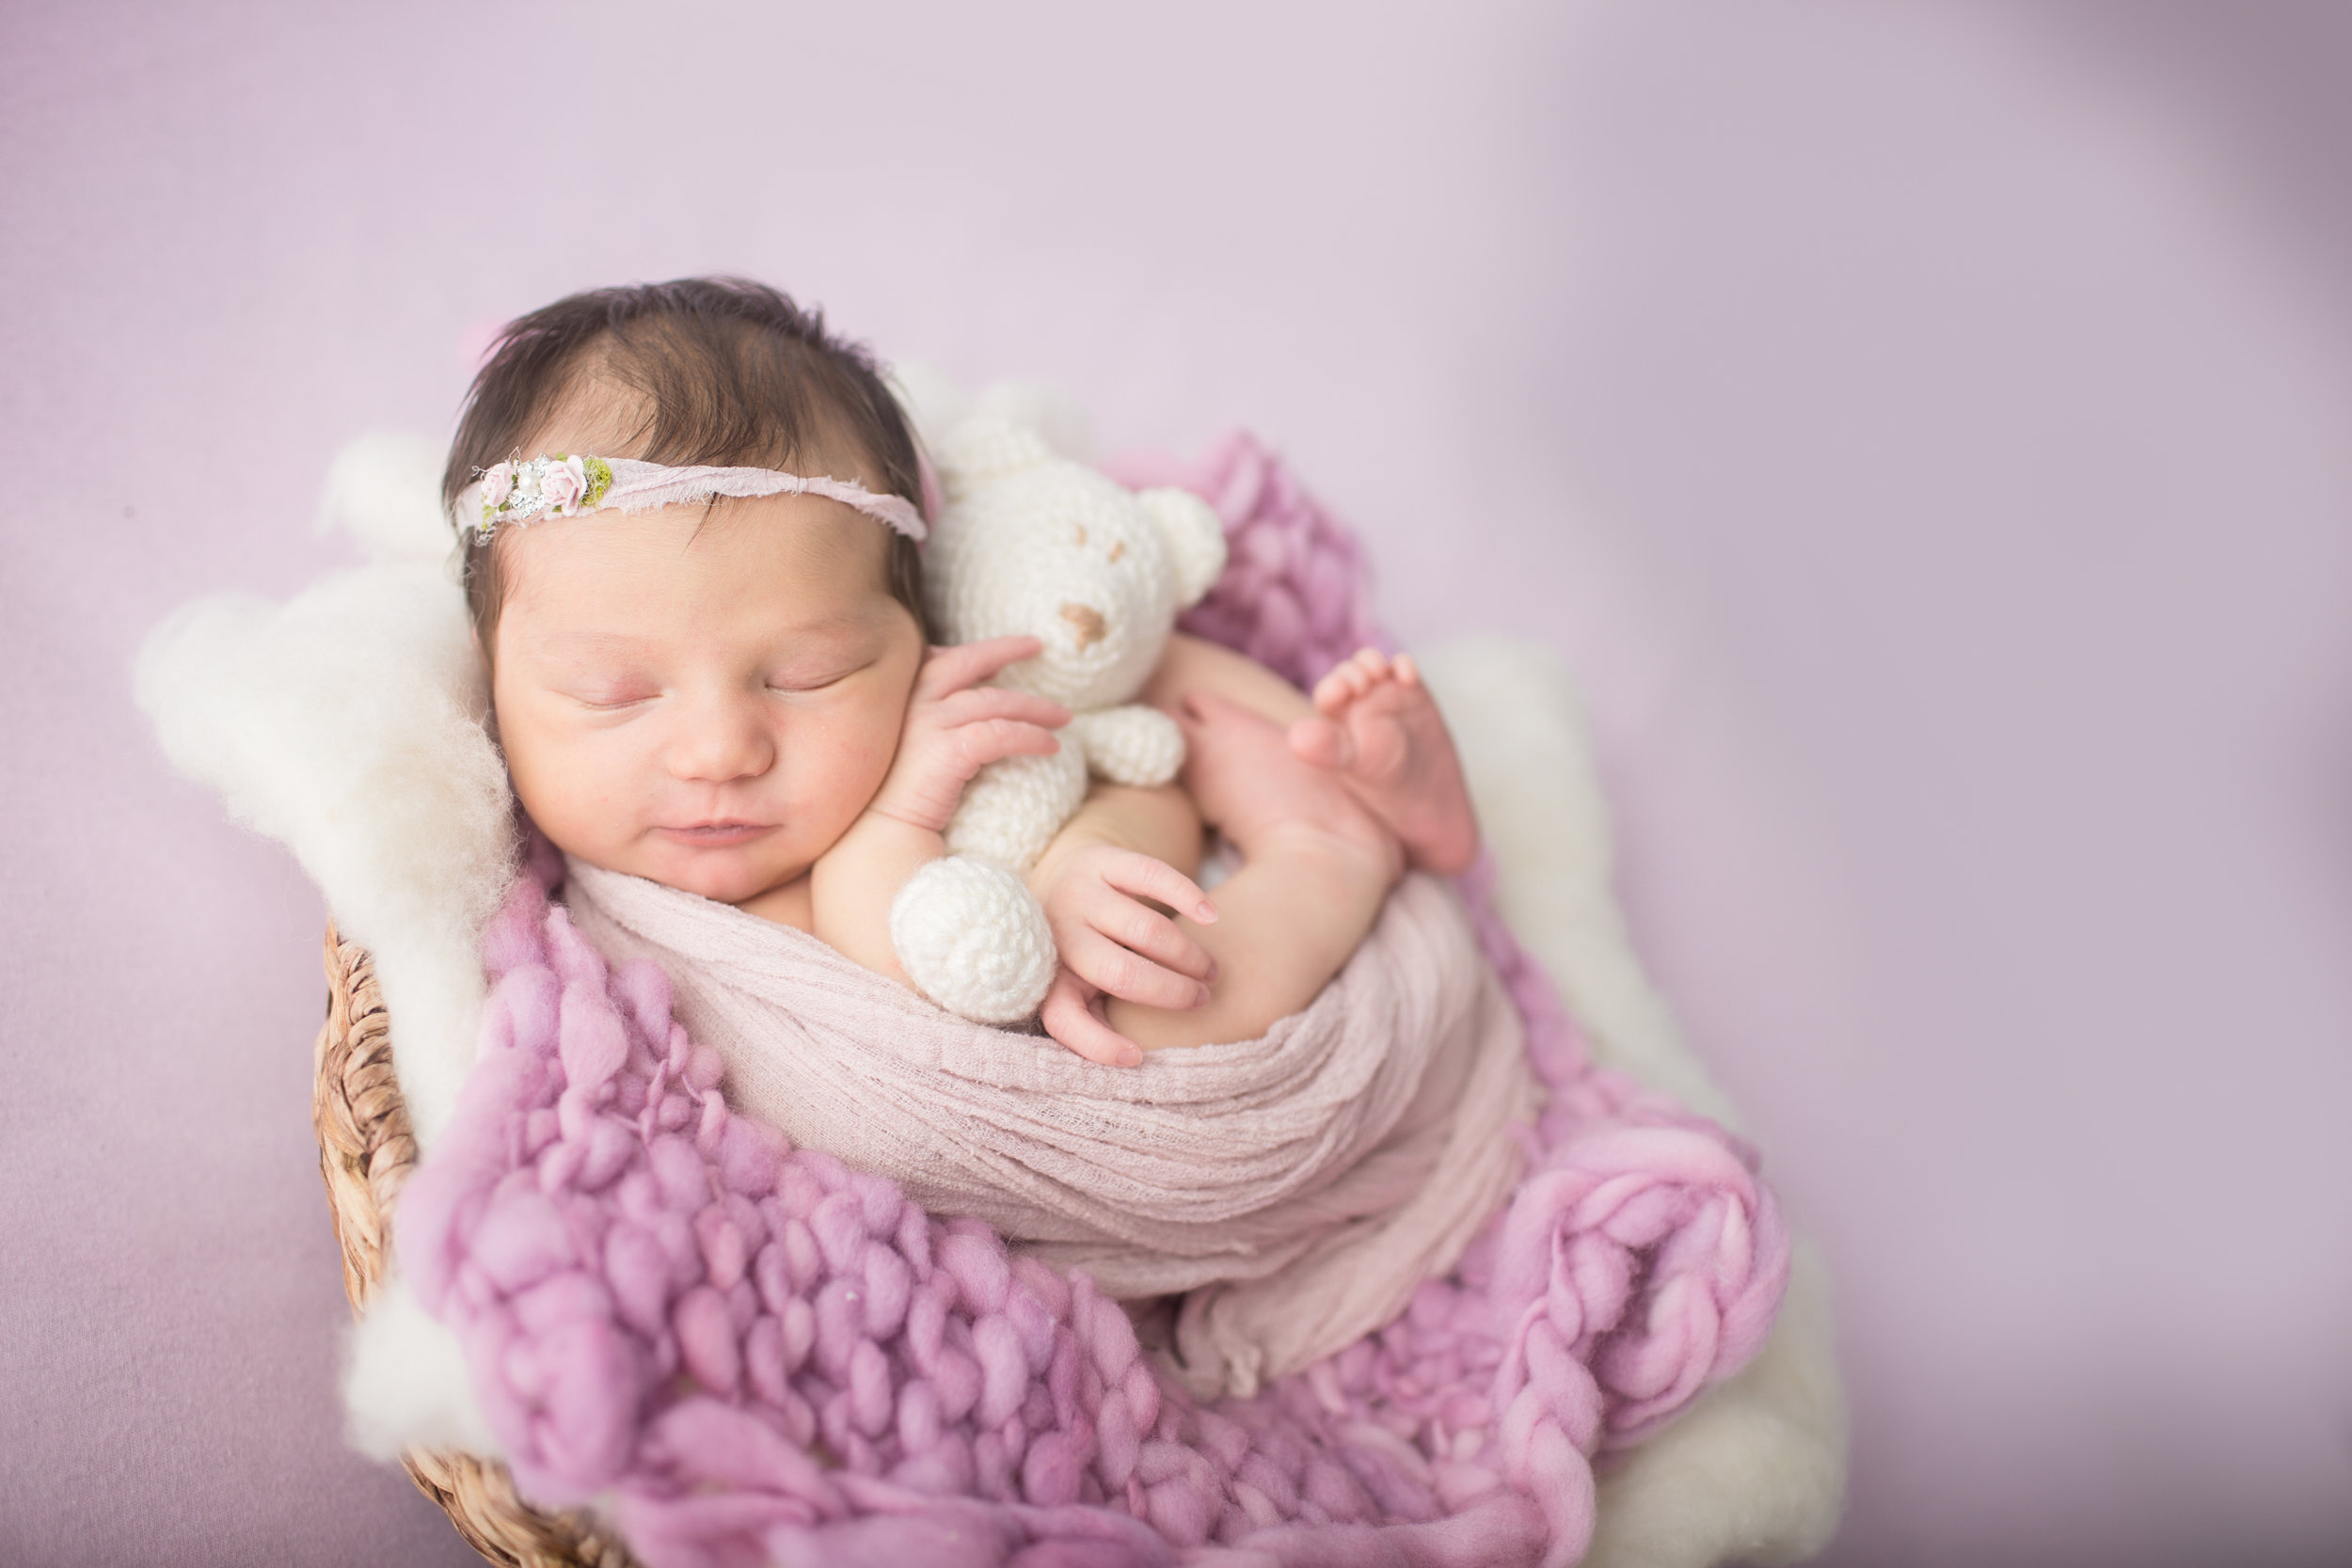 Davison Michigan newborn portrait photographer posing a newborn girl with teddy bear at her studio photo shoot